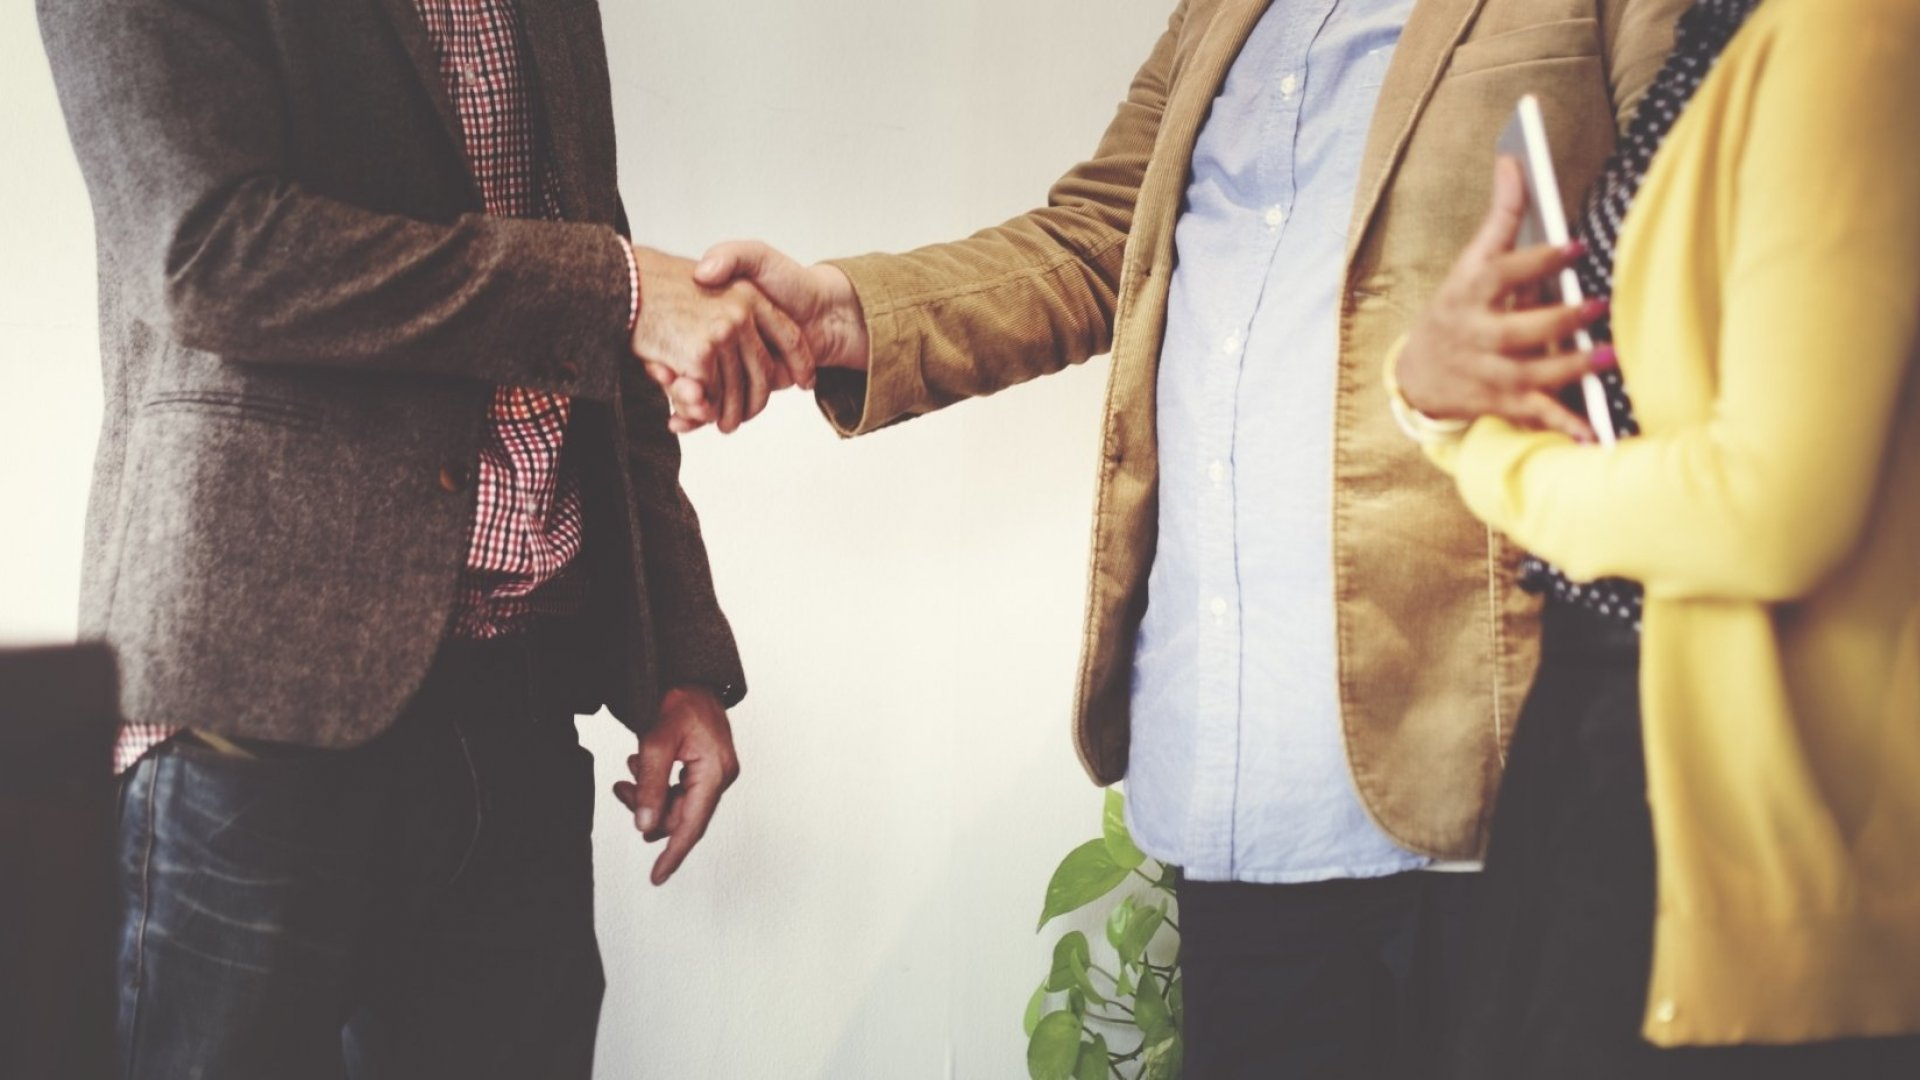 Want to Be a Master Networker? Stop Making Boring Introductions and Do This Instead